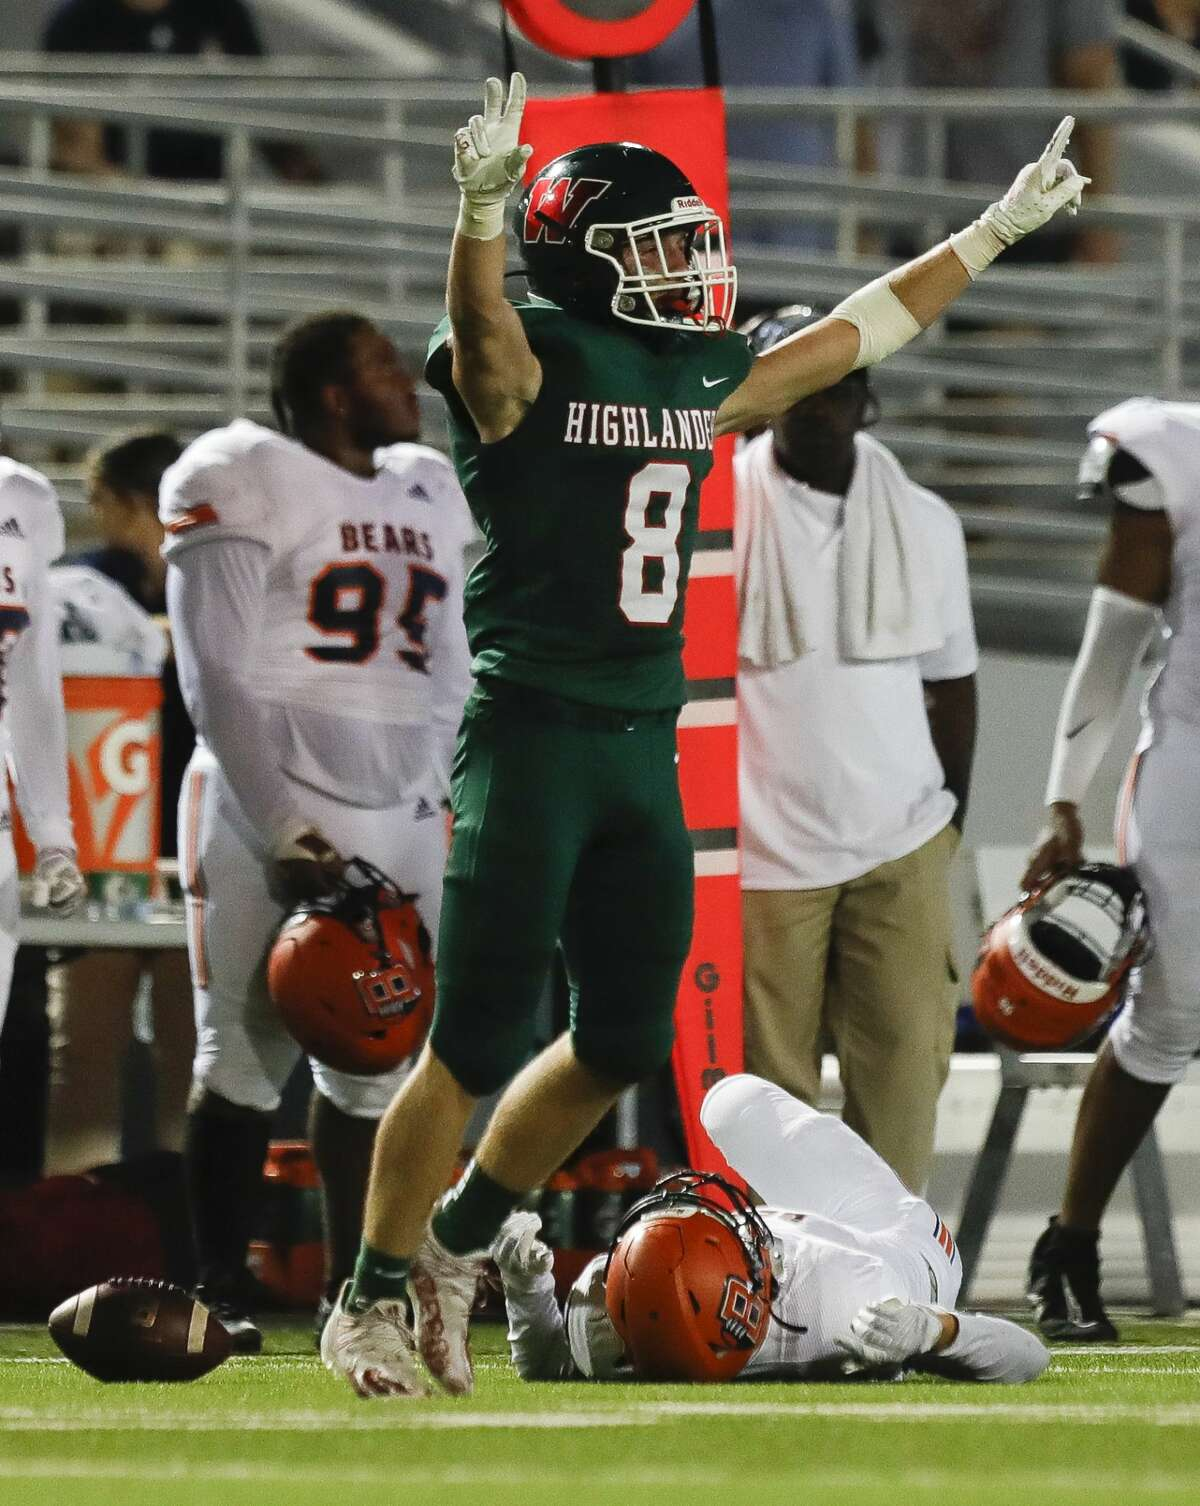 The Woodlands defensive back Brady Carlin (8) reacts after breaking up a pass to Bridgeland wide receiver Andrew Maleski (6) during the fourth quarter of a non-district high school football game at Woodforest Bank Stadium, Friday, Sept. 10, 2021, in Shenandoah.